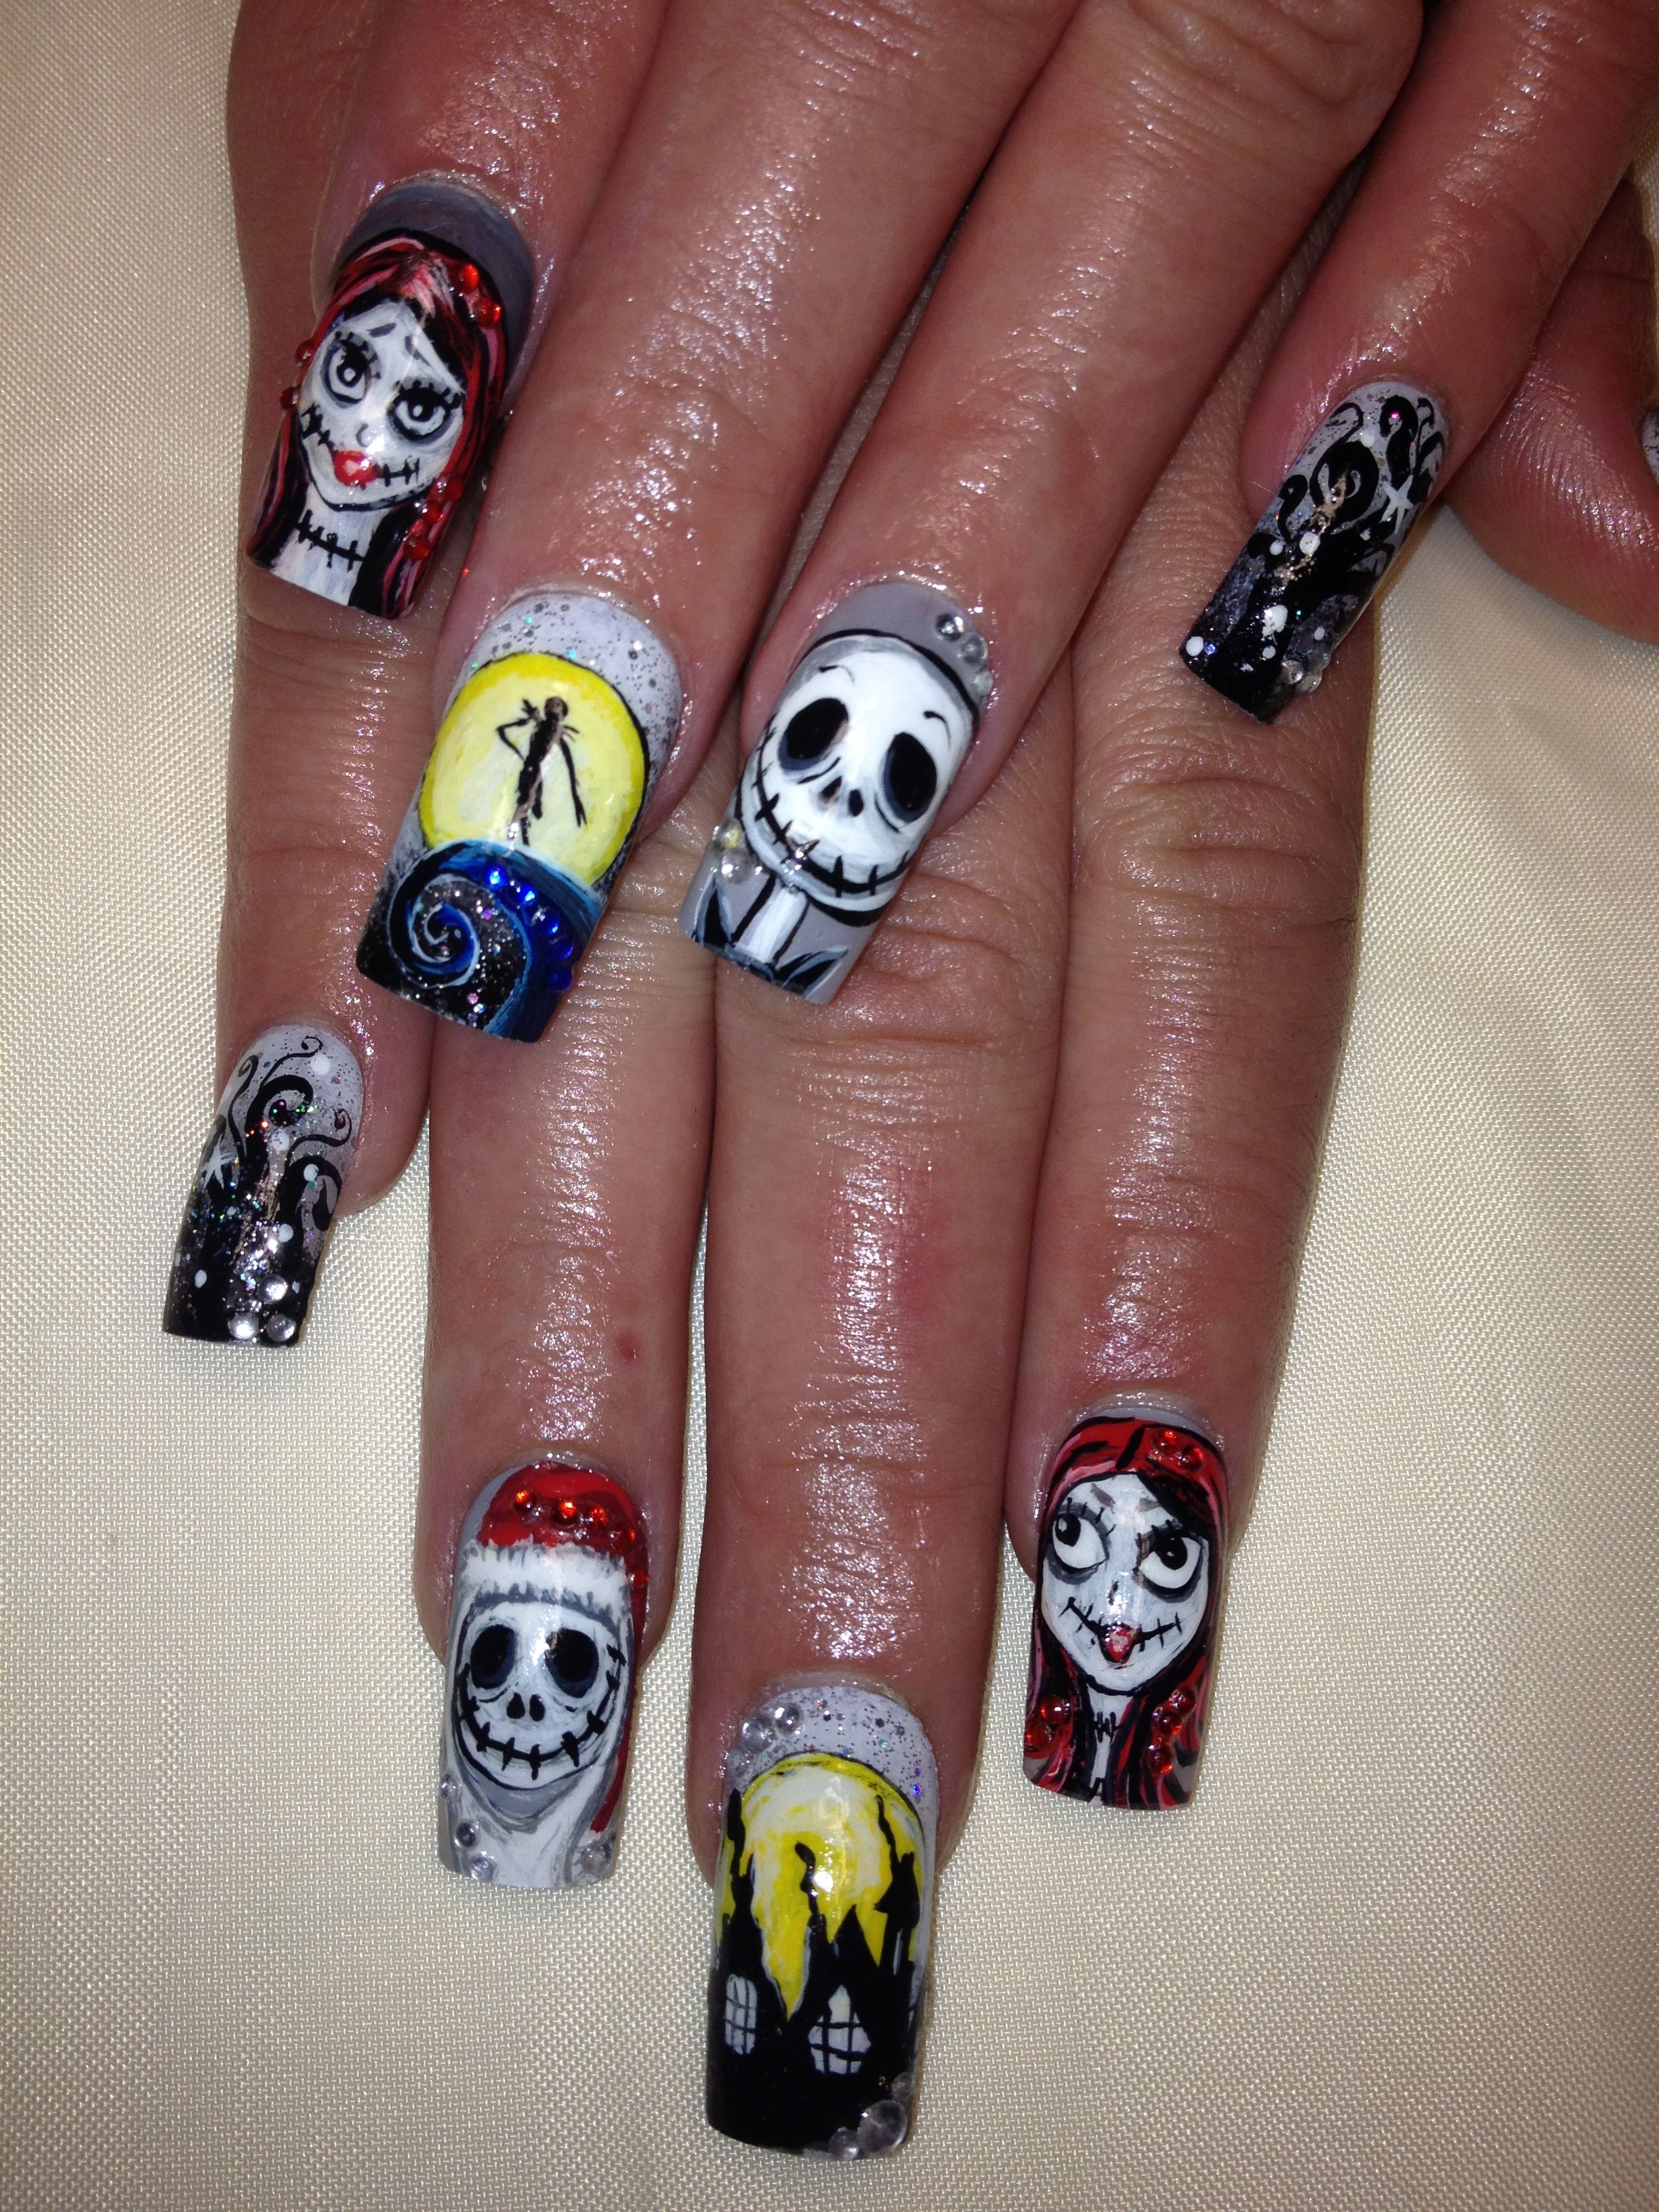 Day 353: Jack and Sally Nail Art | Holiday/Themed Nail Art ...